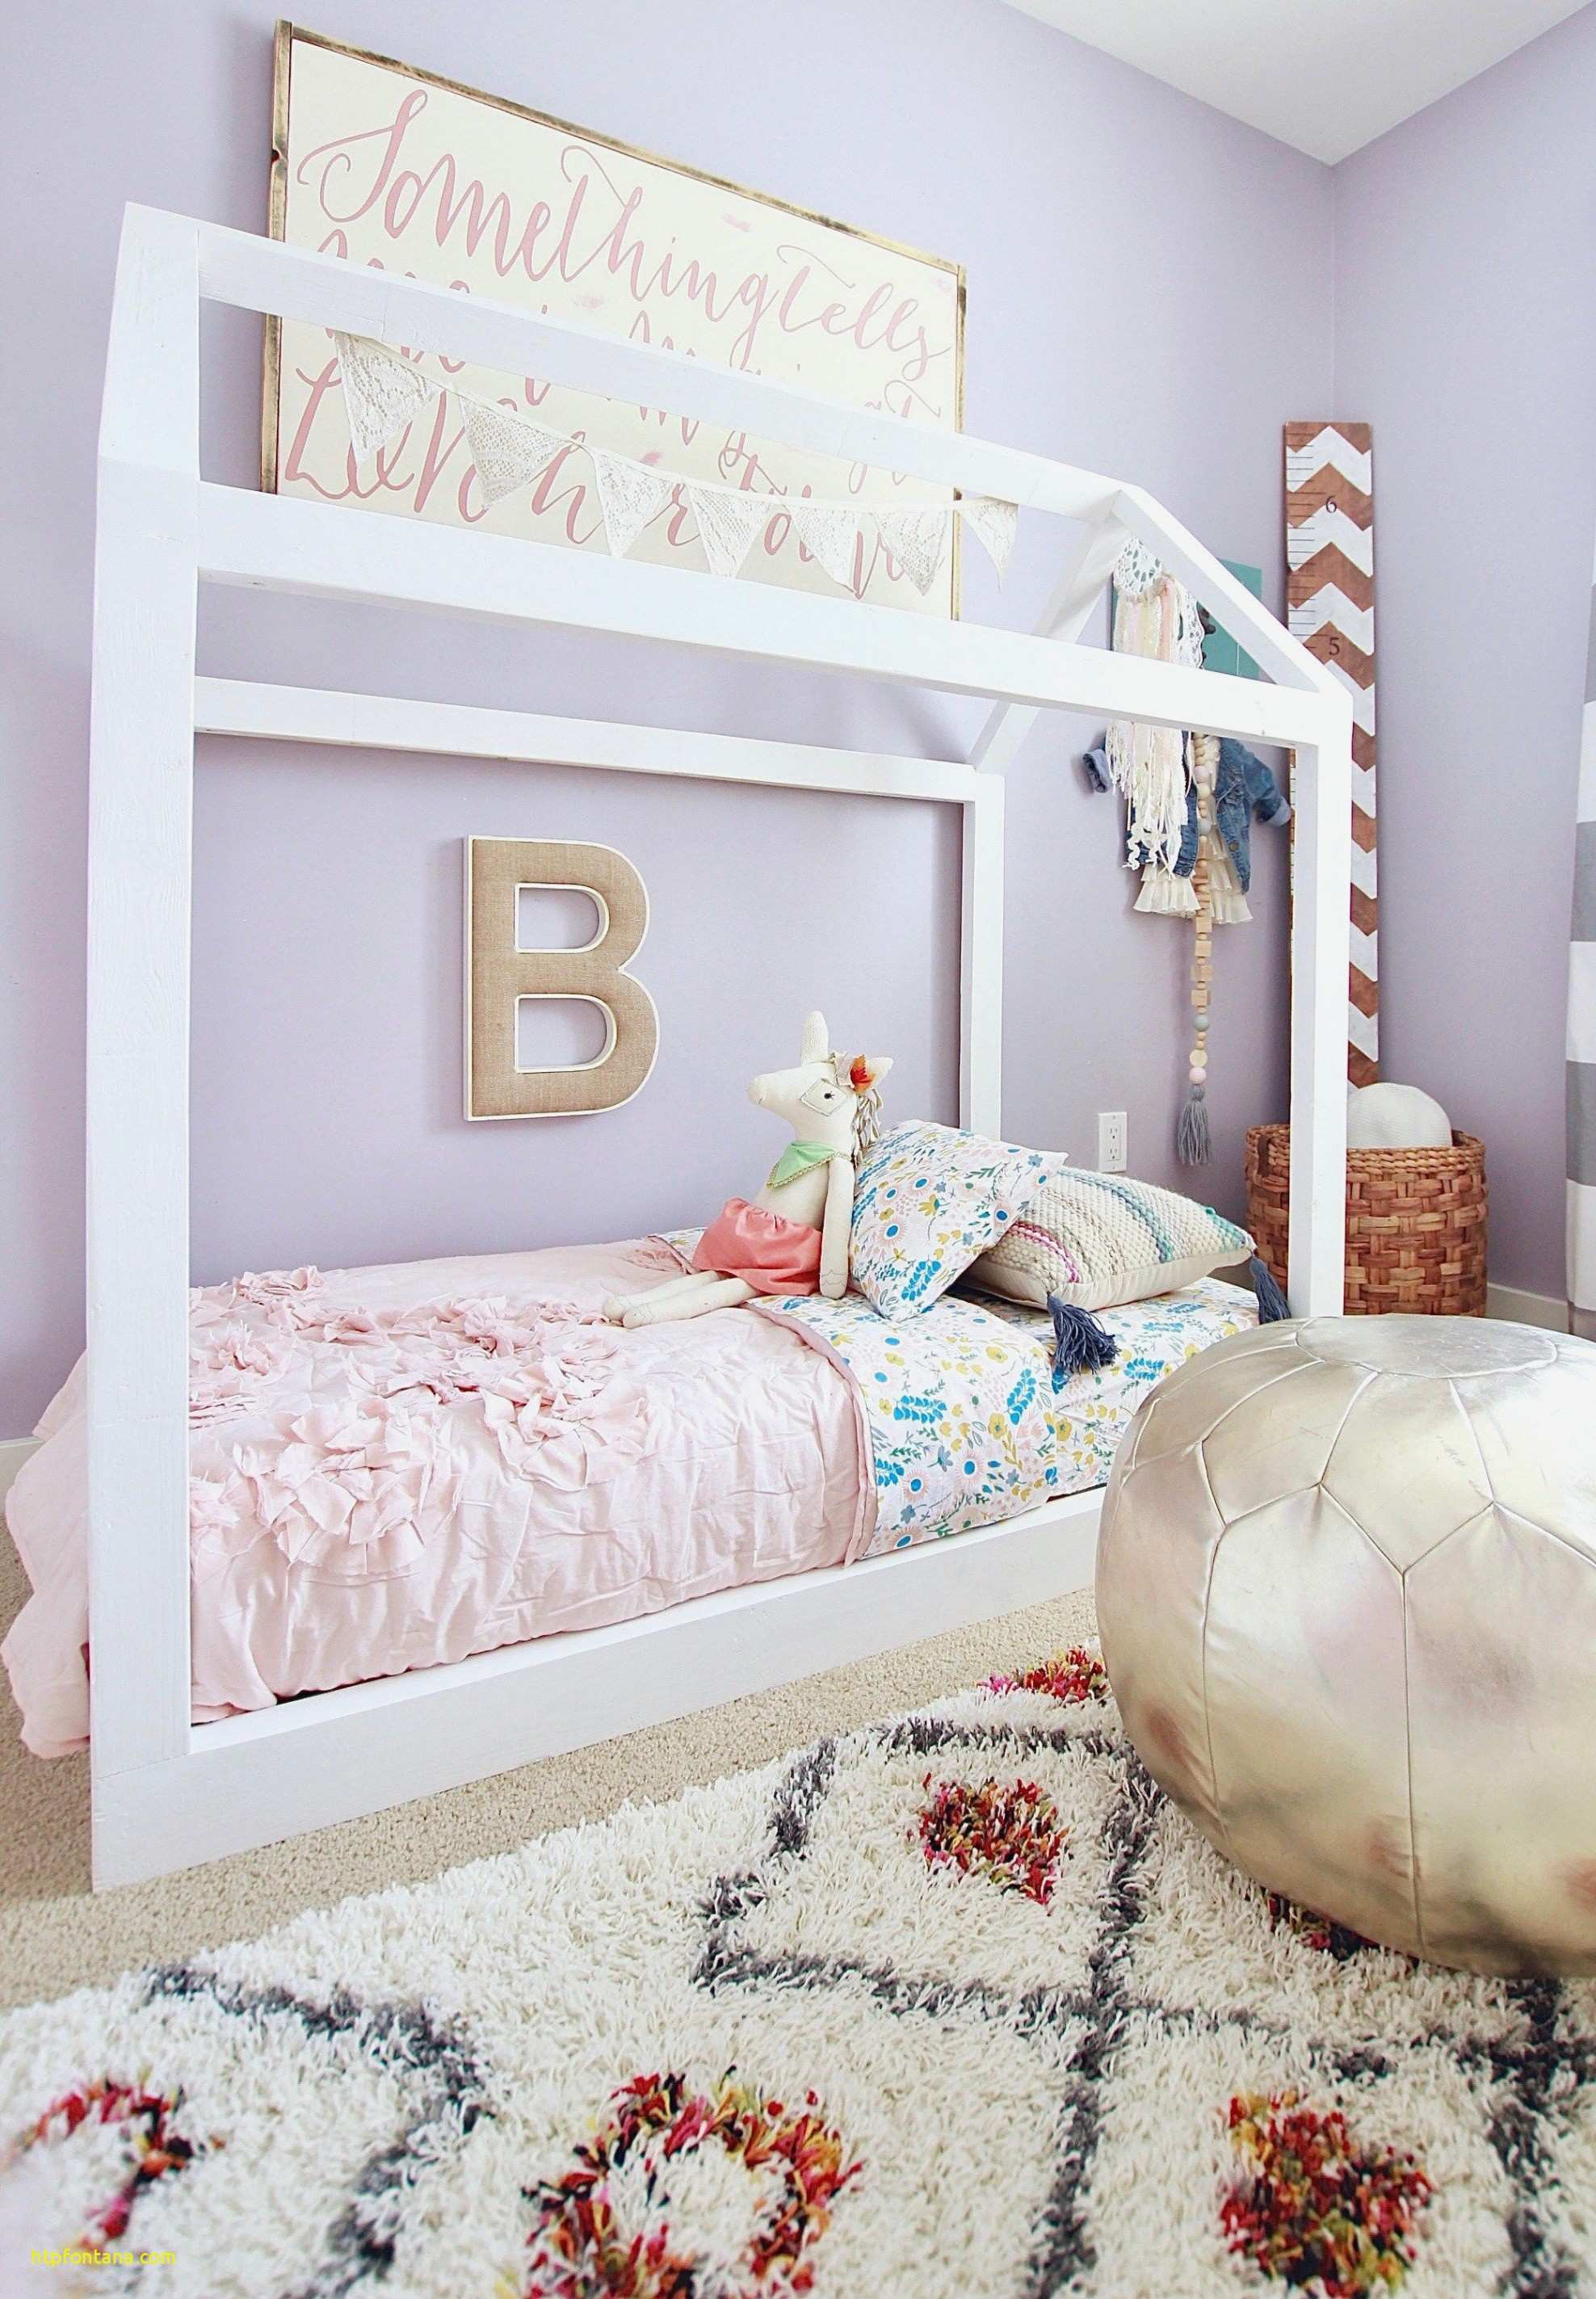 Bedroom for Boys Inspirational Fresh Bedroom Wall Decor